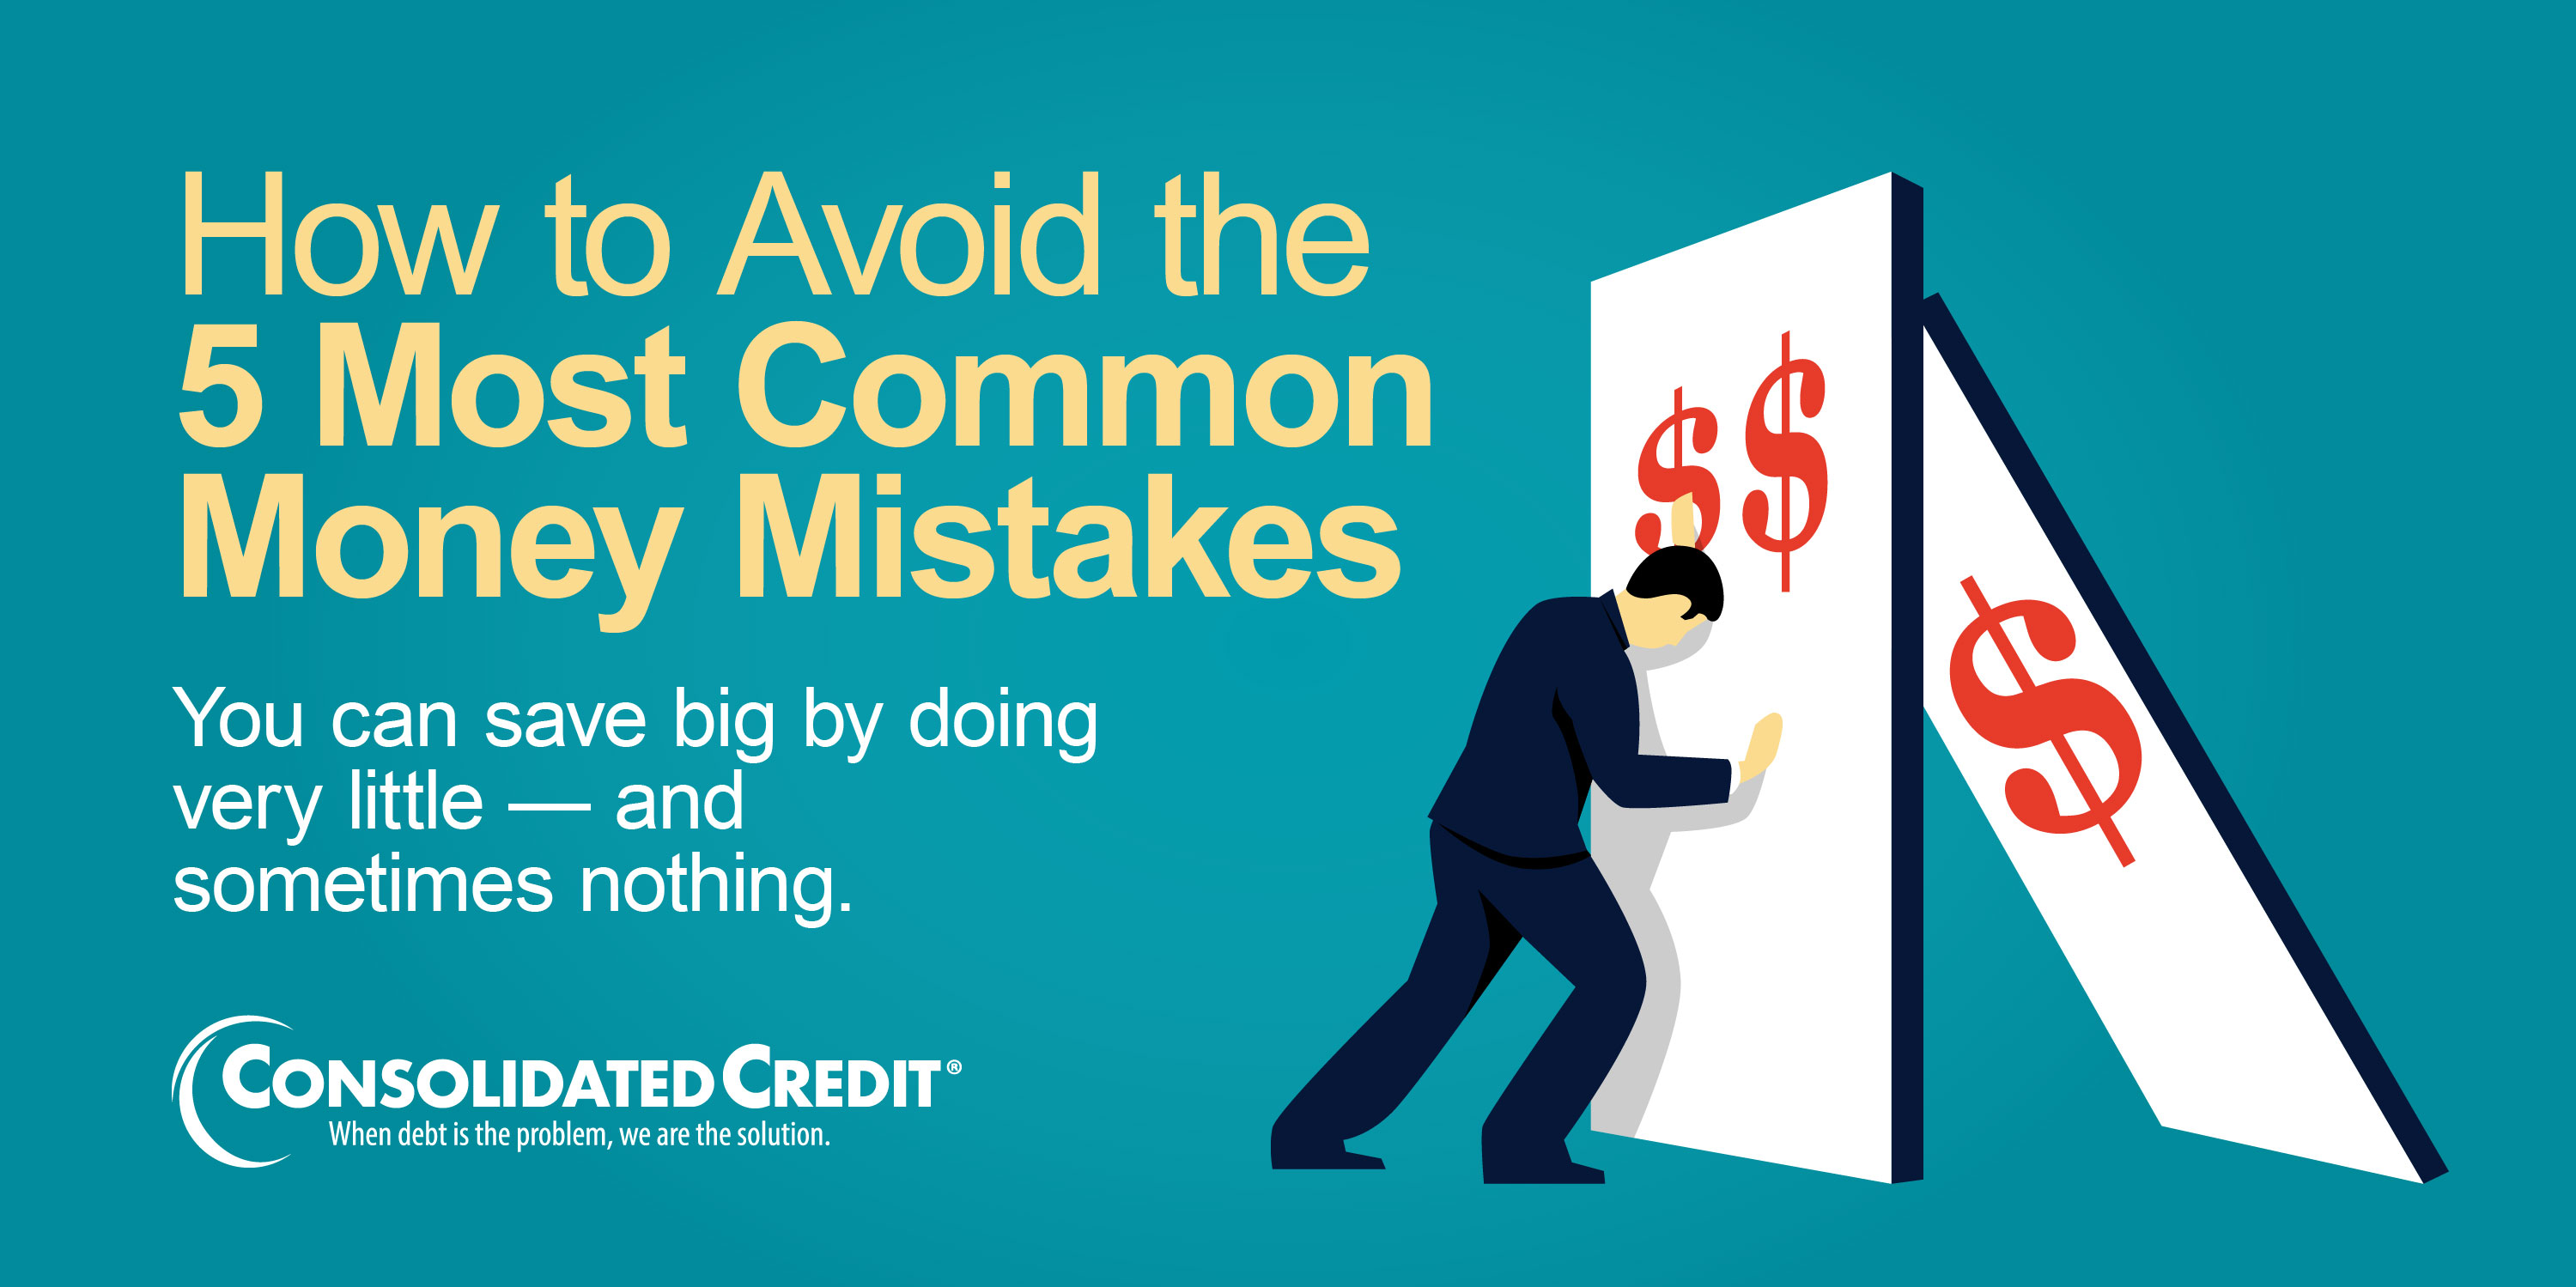 How to Avoid the 5 Most Common Money Mistakes: You can save big by doing very little (and sometimes nothing)